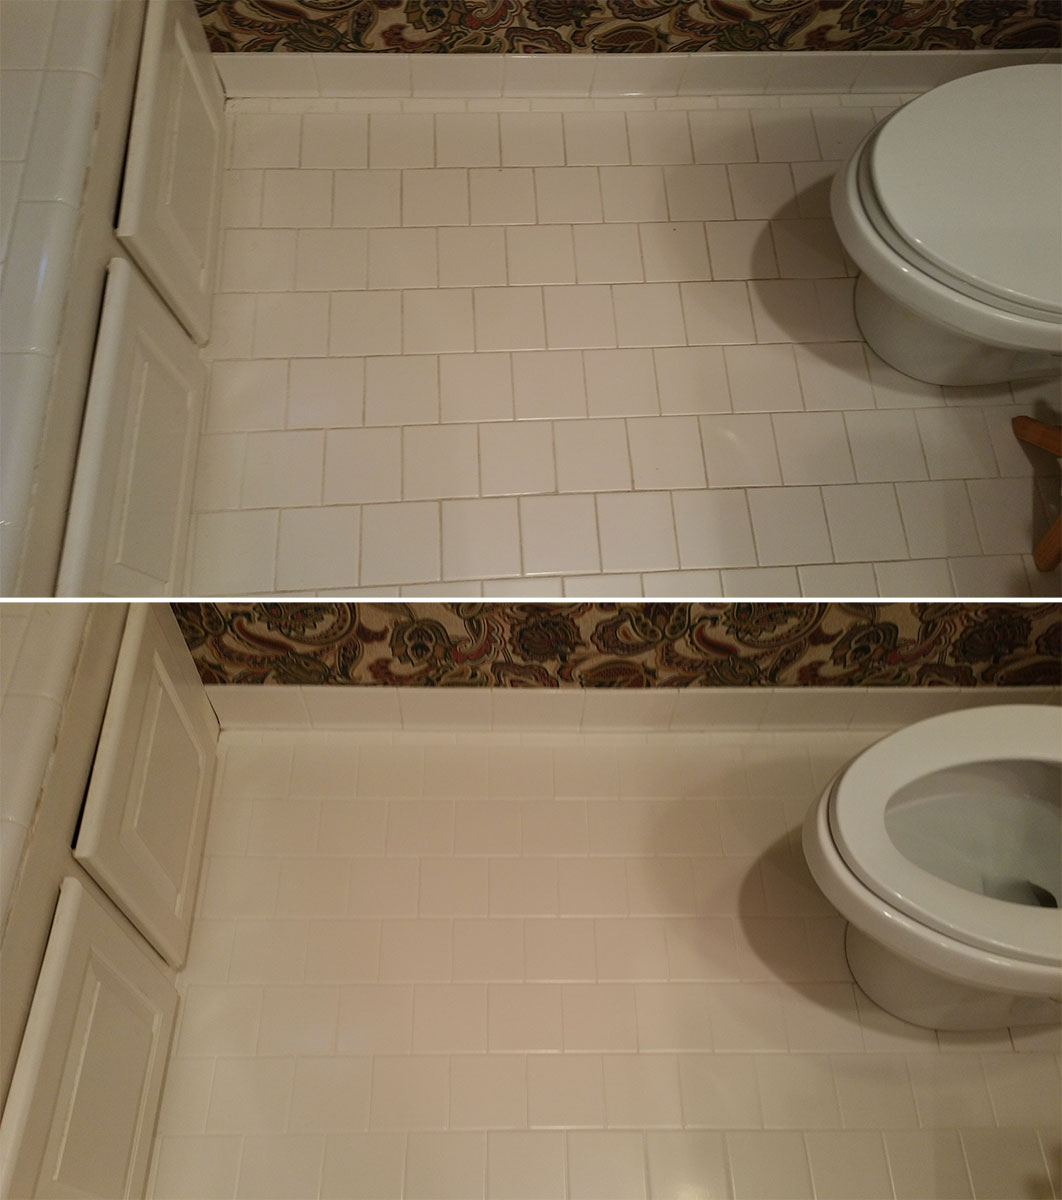 Bathroom Grout Tile Grout Cleaning Contour Cleaning